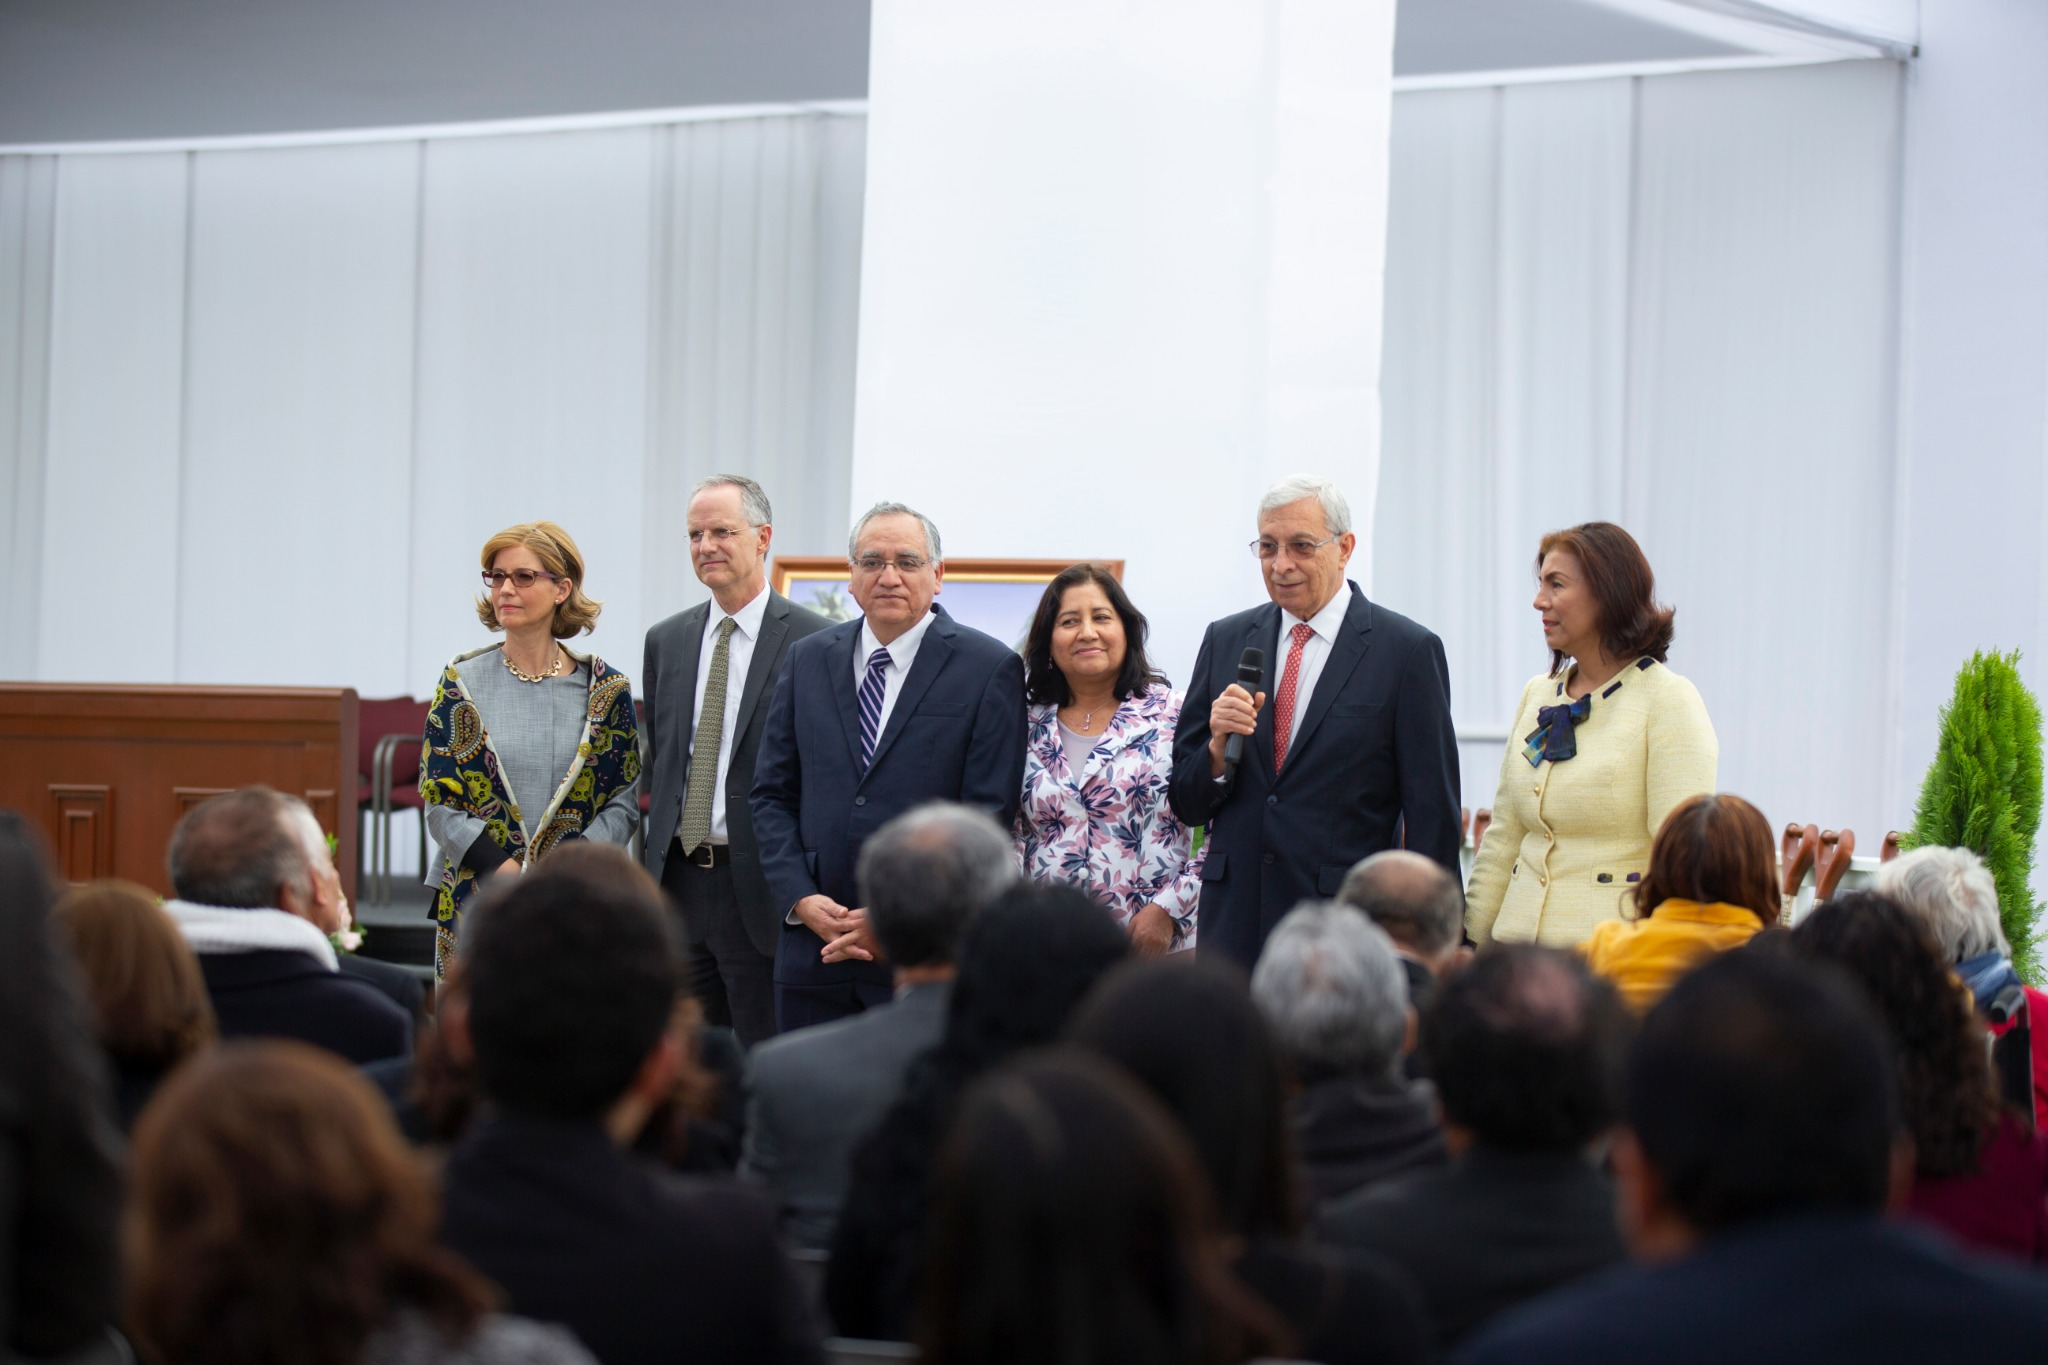 Elder Enrique R. Falabella, a General Authority Seventy and the president of the South America Northwest Area, speaks to Church members at the groundbreaking of the Lima Peru Los Olivos Temple on Saturday, June 8, 2019.